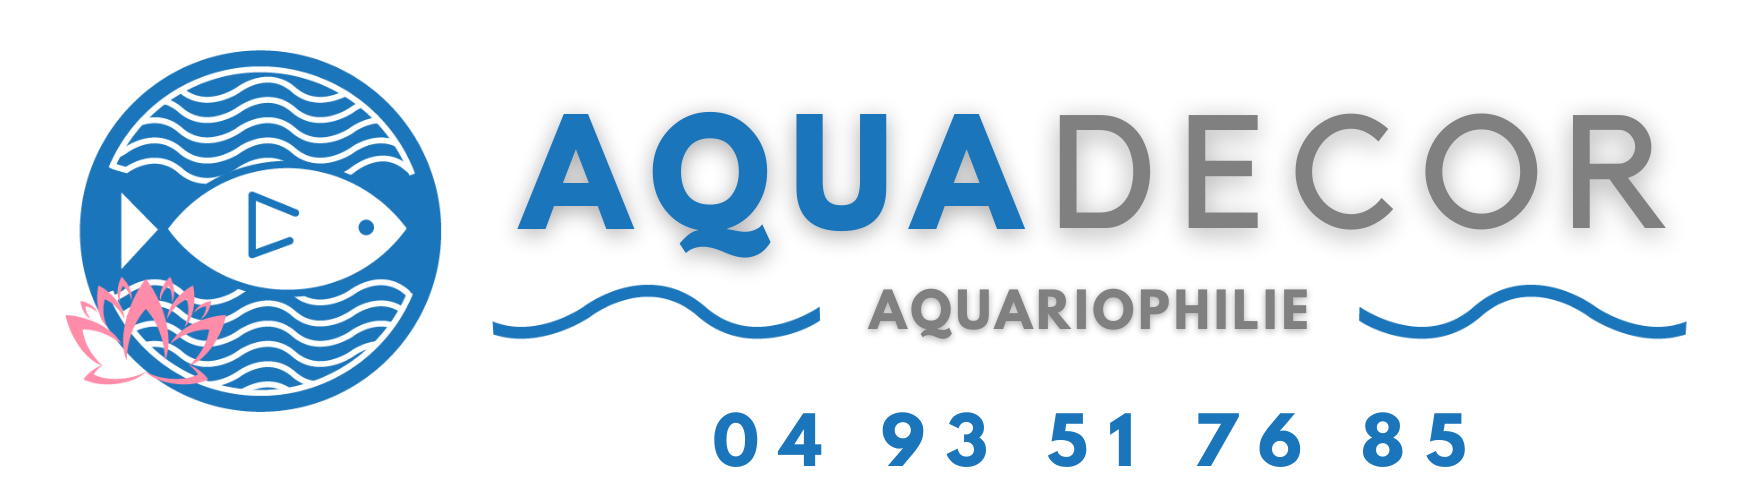 aquadecor